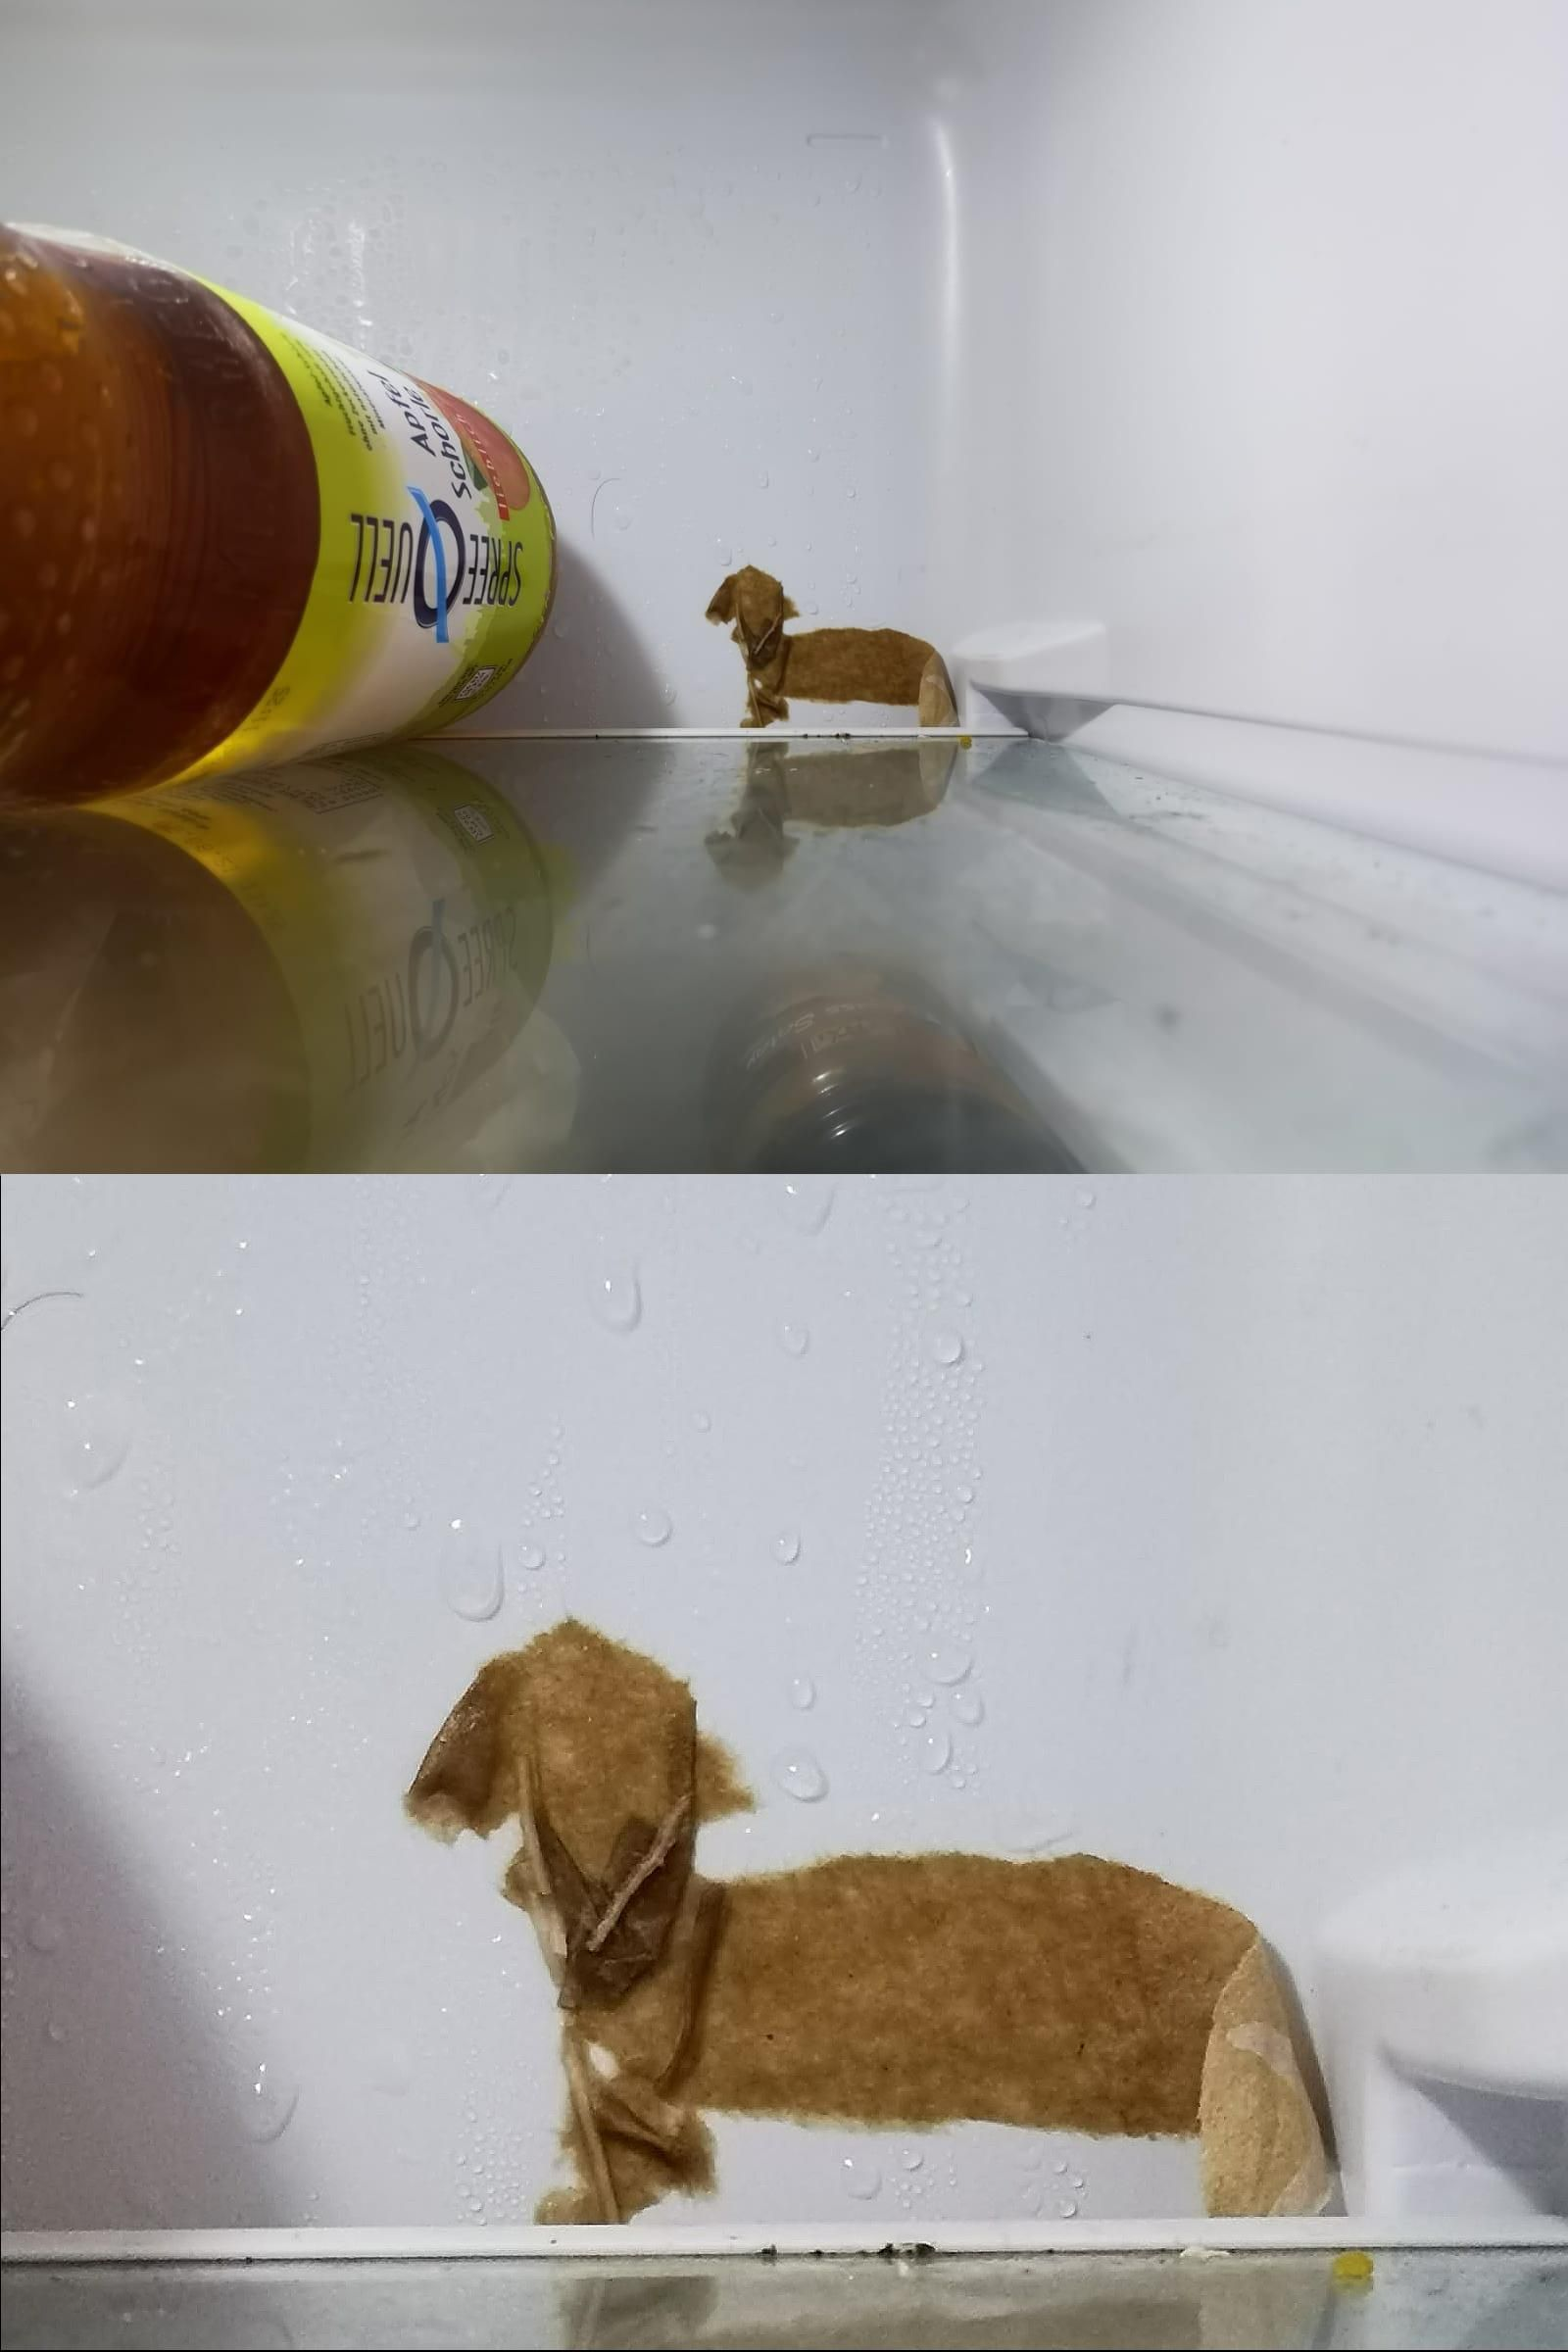 The piece of paper that is frozen to the back of my fridge looks like a wiener dog.